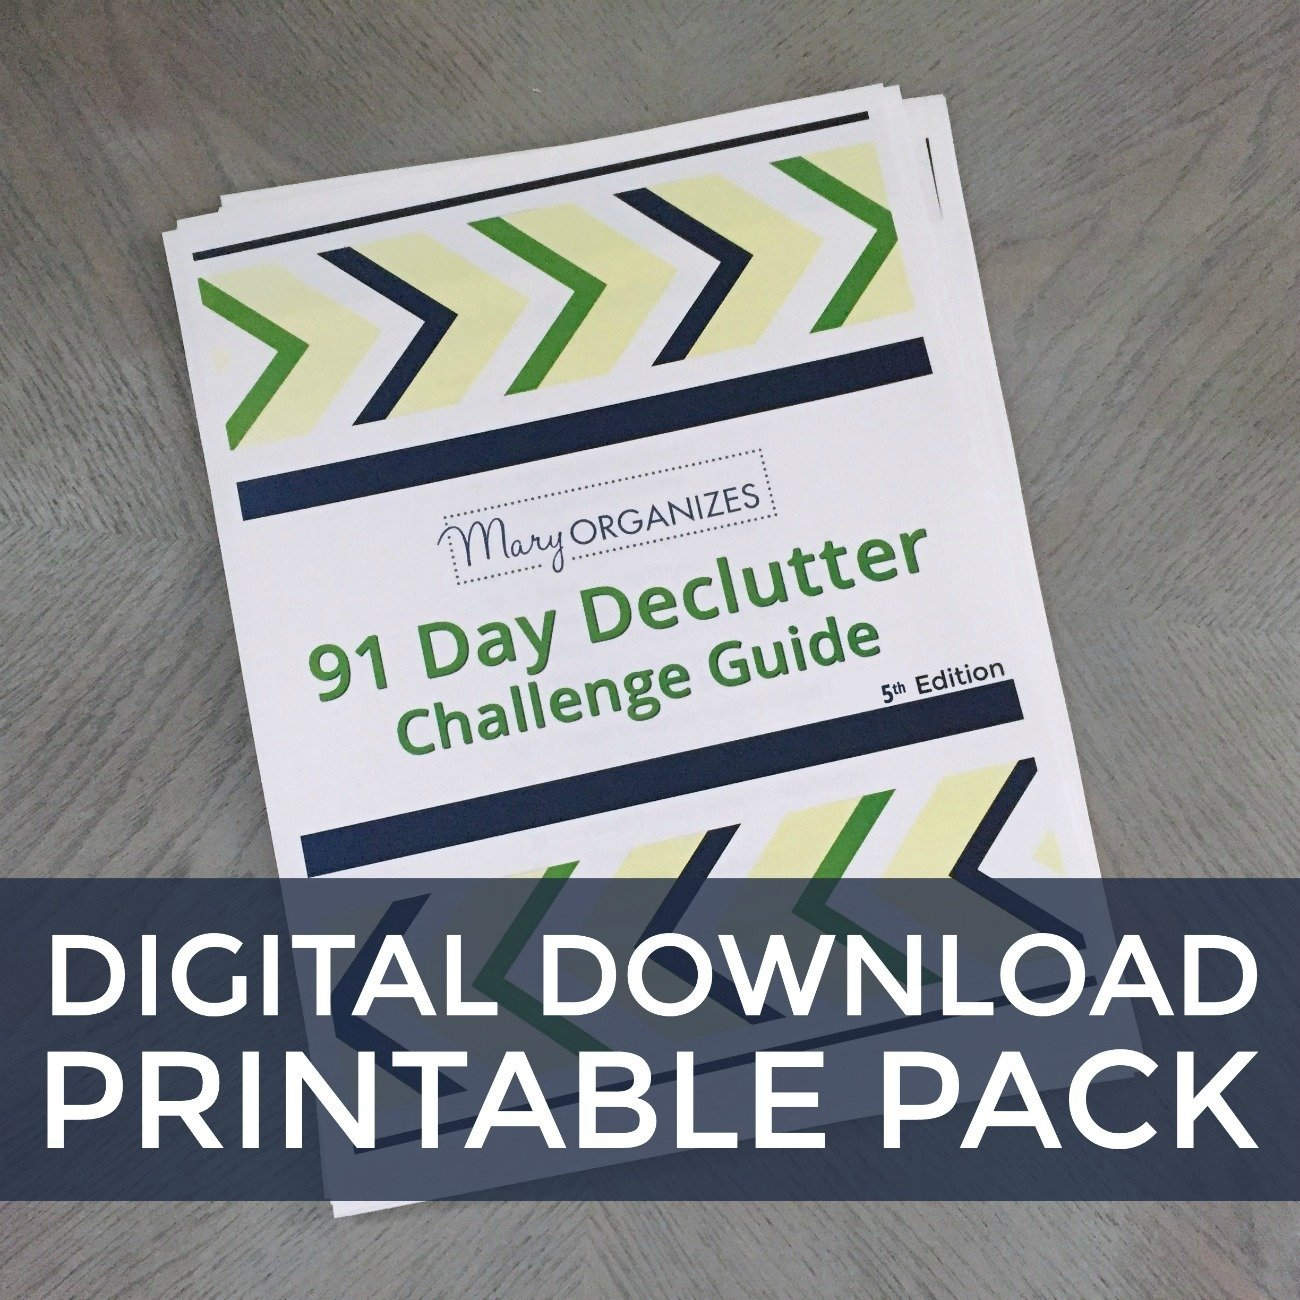 91 Day Declutter Challenge Guide